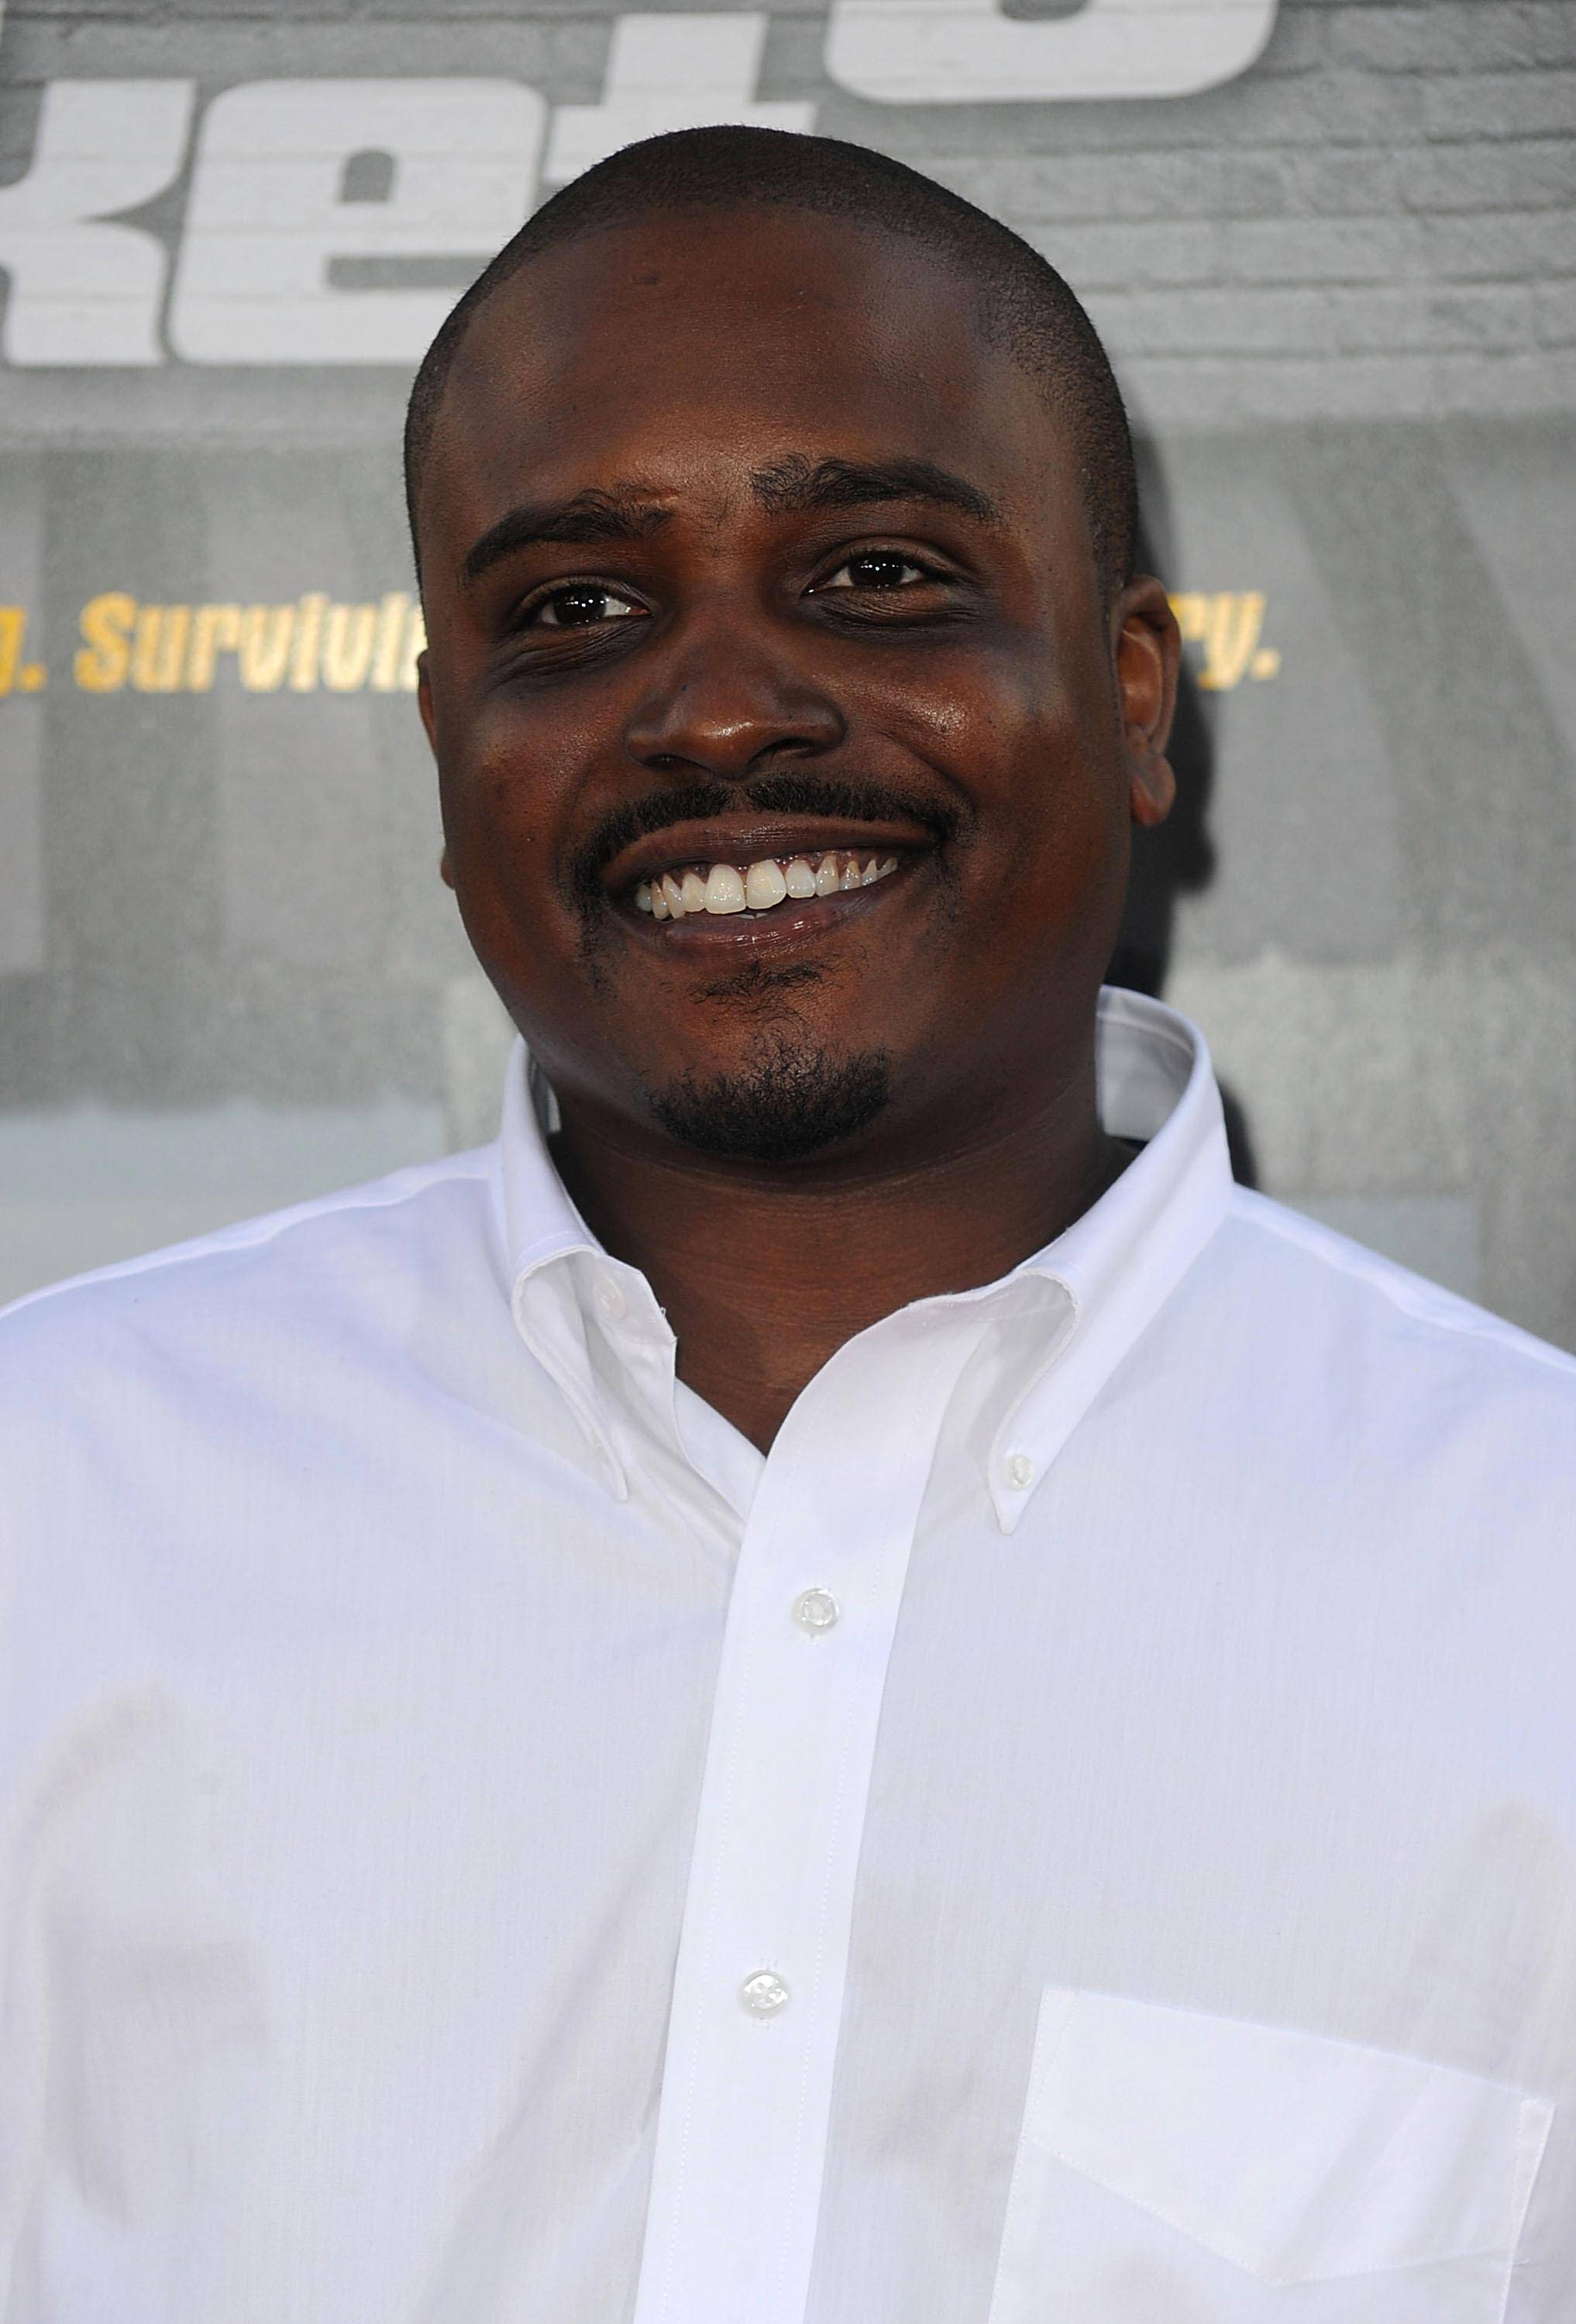 Jason Weaver - March 25, 2014 - Jason Weaver told us how his character's keeping it all together on Let's Stay Together.Watch a clip now!(Photo: Frazer Harrison/Getty Images)